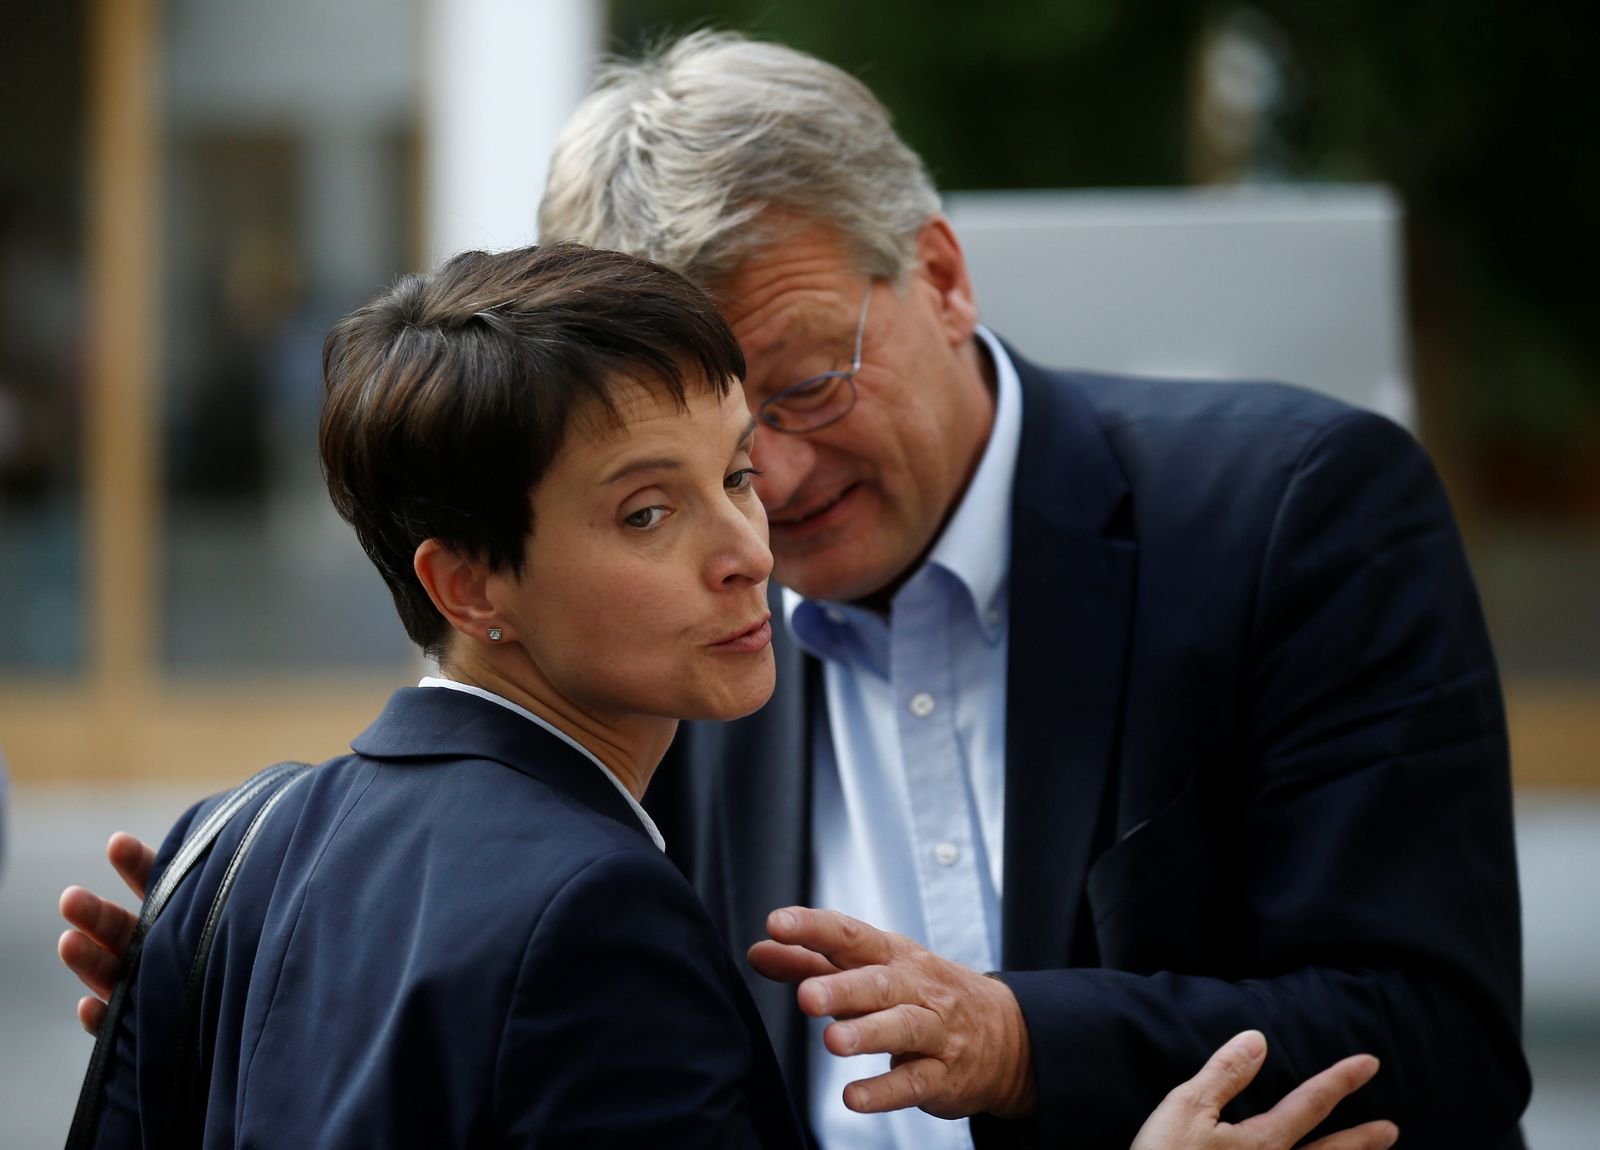 Meuthen, Petry